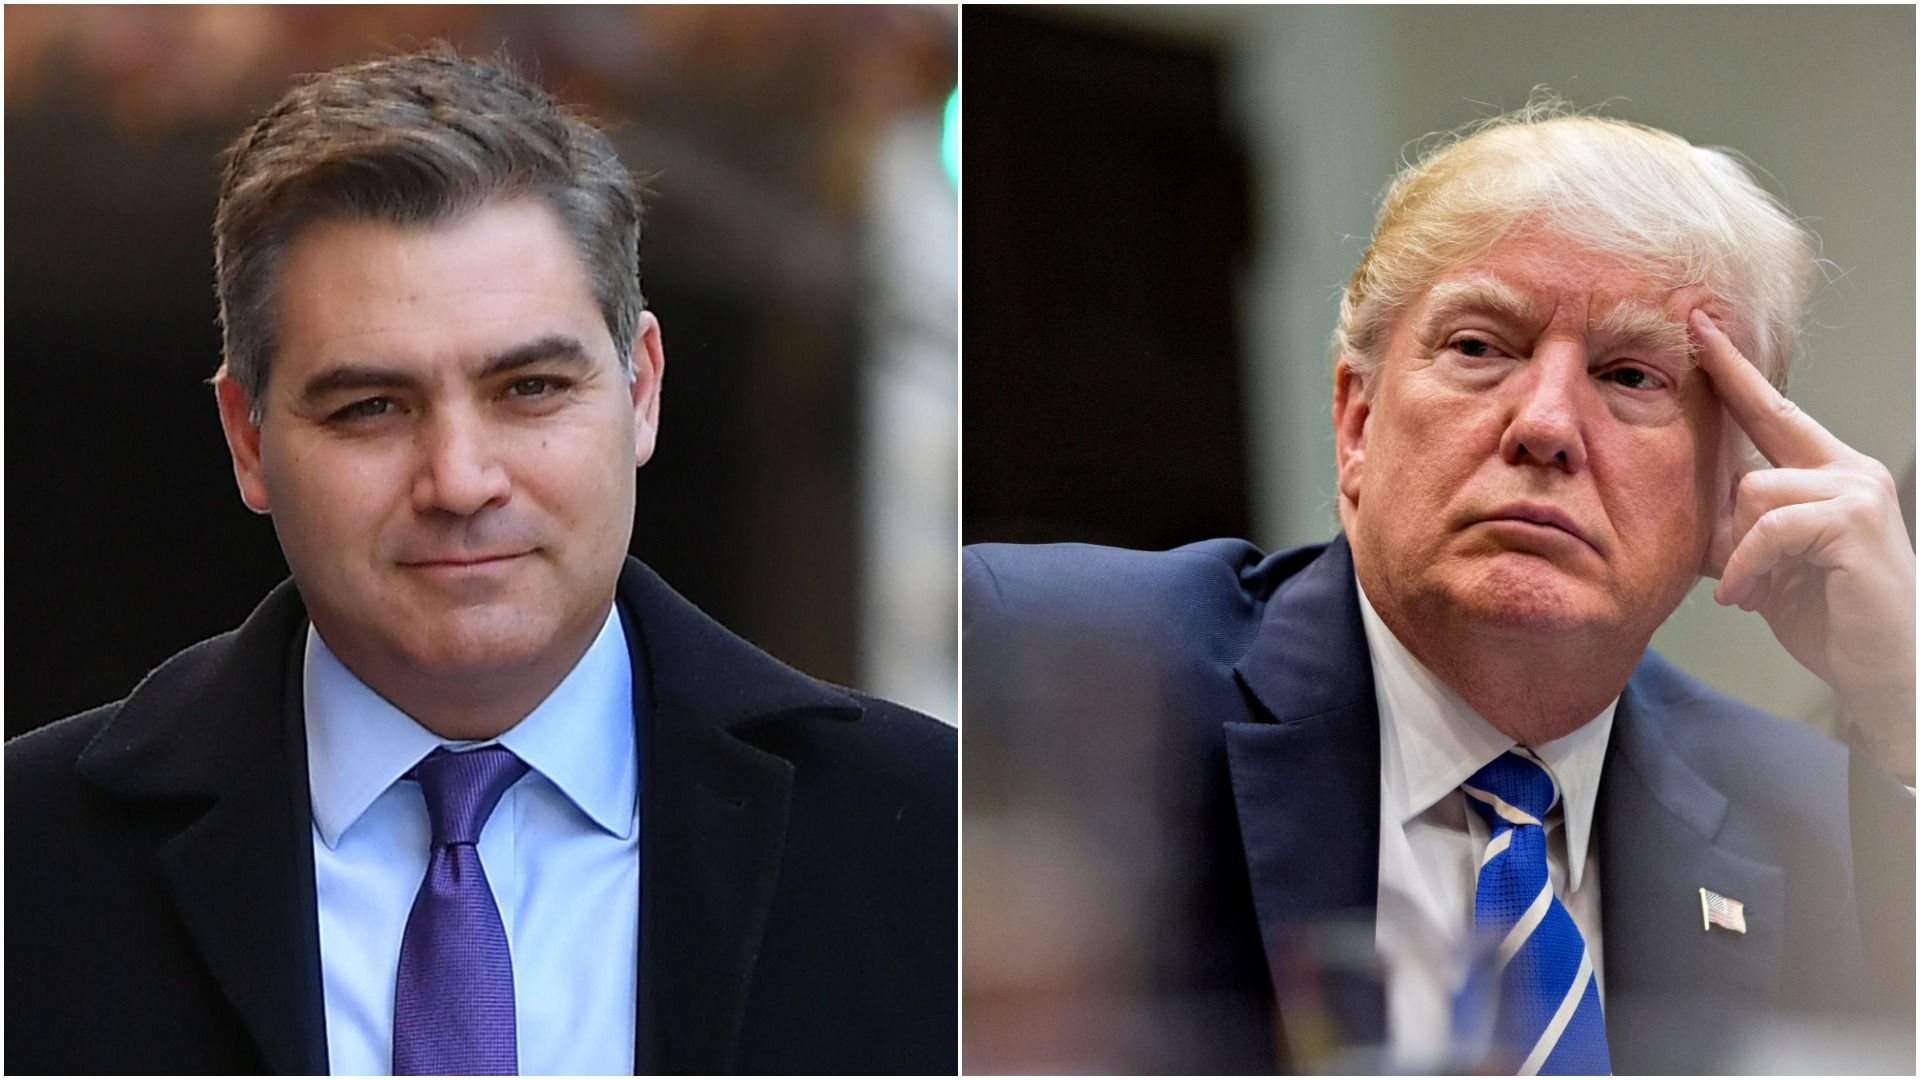 CNN Chief White House Correspondent, Jim Acosta and President Trump